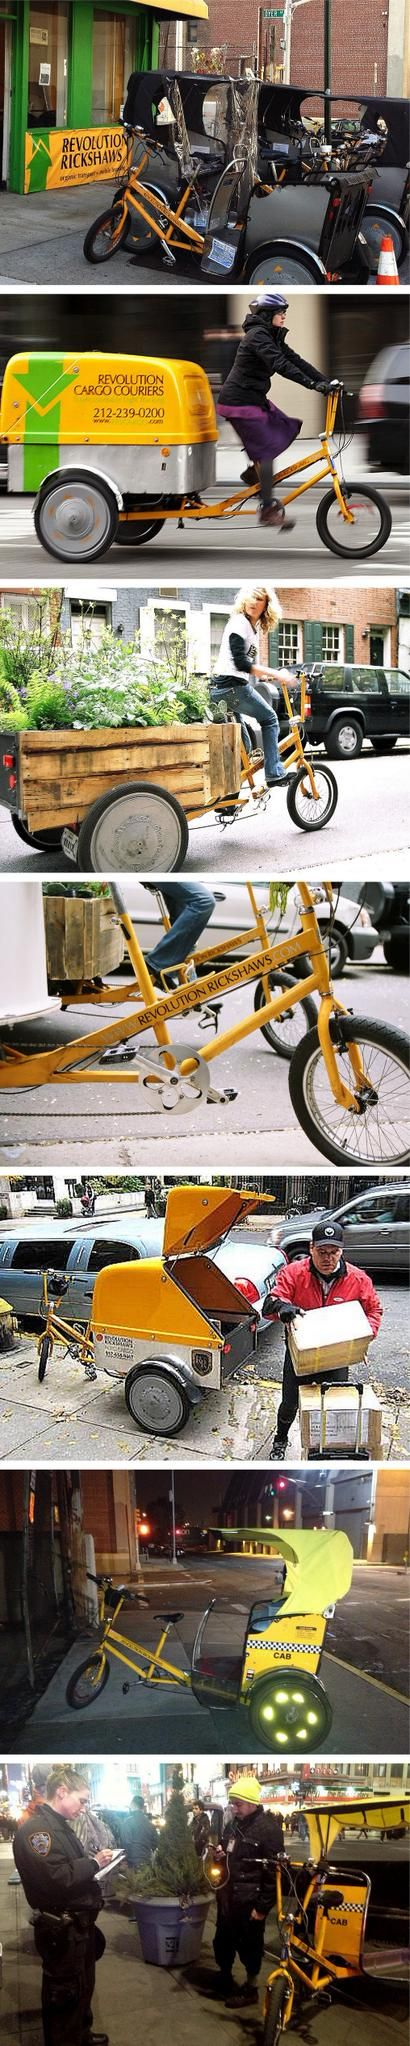 Revolution Rickshaws, NYC. Click image for link to their web site via Twitter, and visit the slowottawa.ca boards >> https://www.pinterest.com/slowottawa/